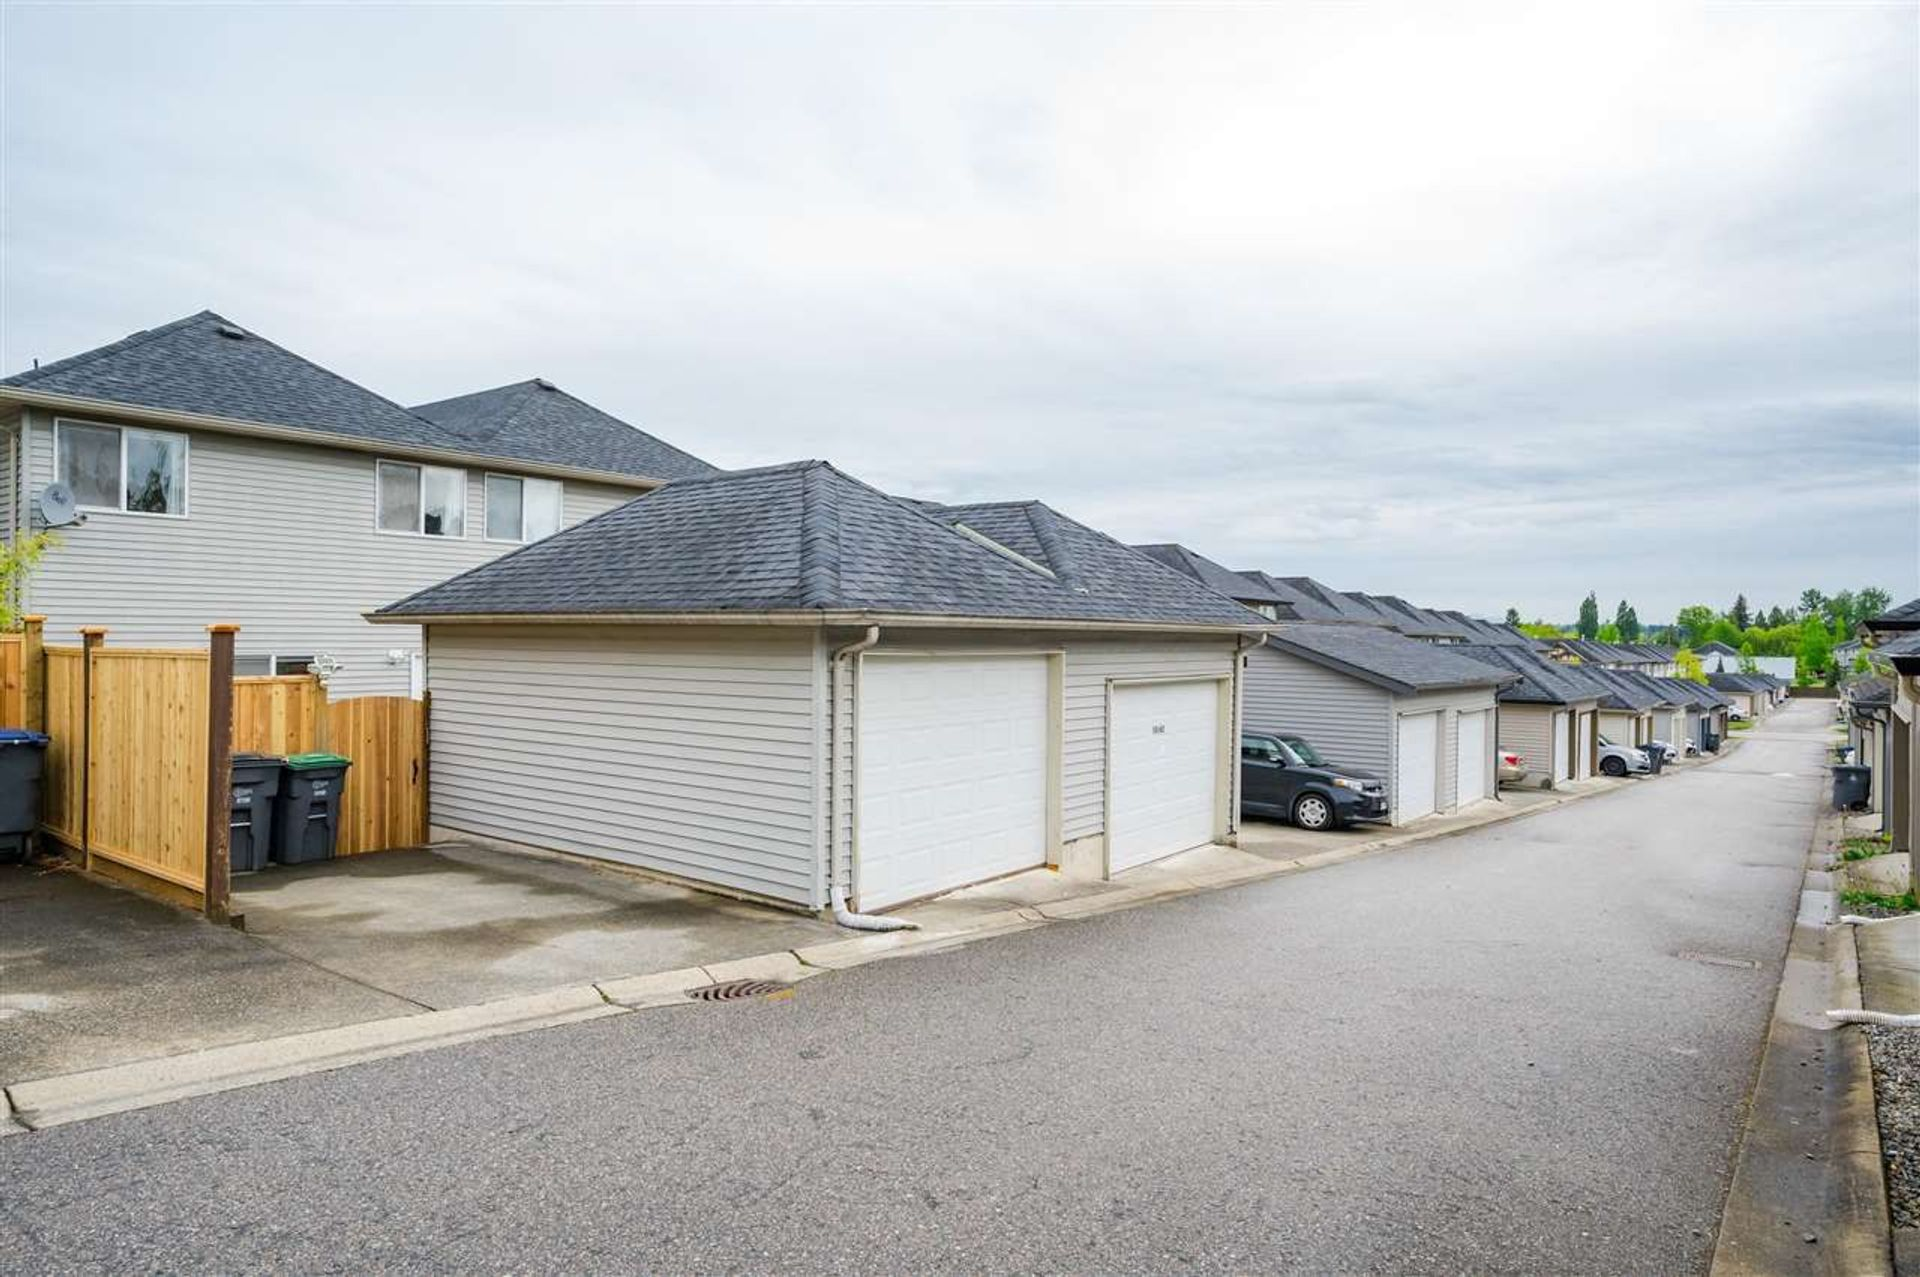 16538-60th-ave-avenue-cloverdale-bc-cloverdale-29 at 16538 60th Ave Avenue, Cloverdale BC, Cloverdale